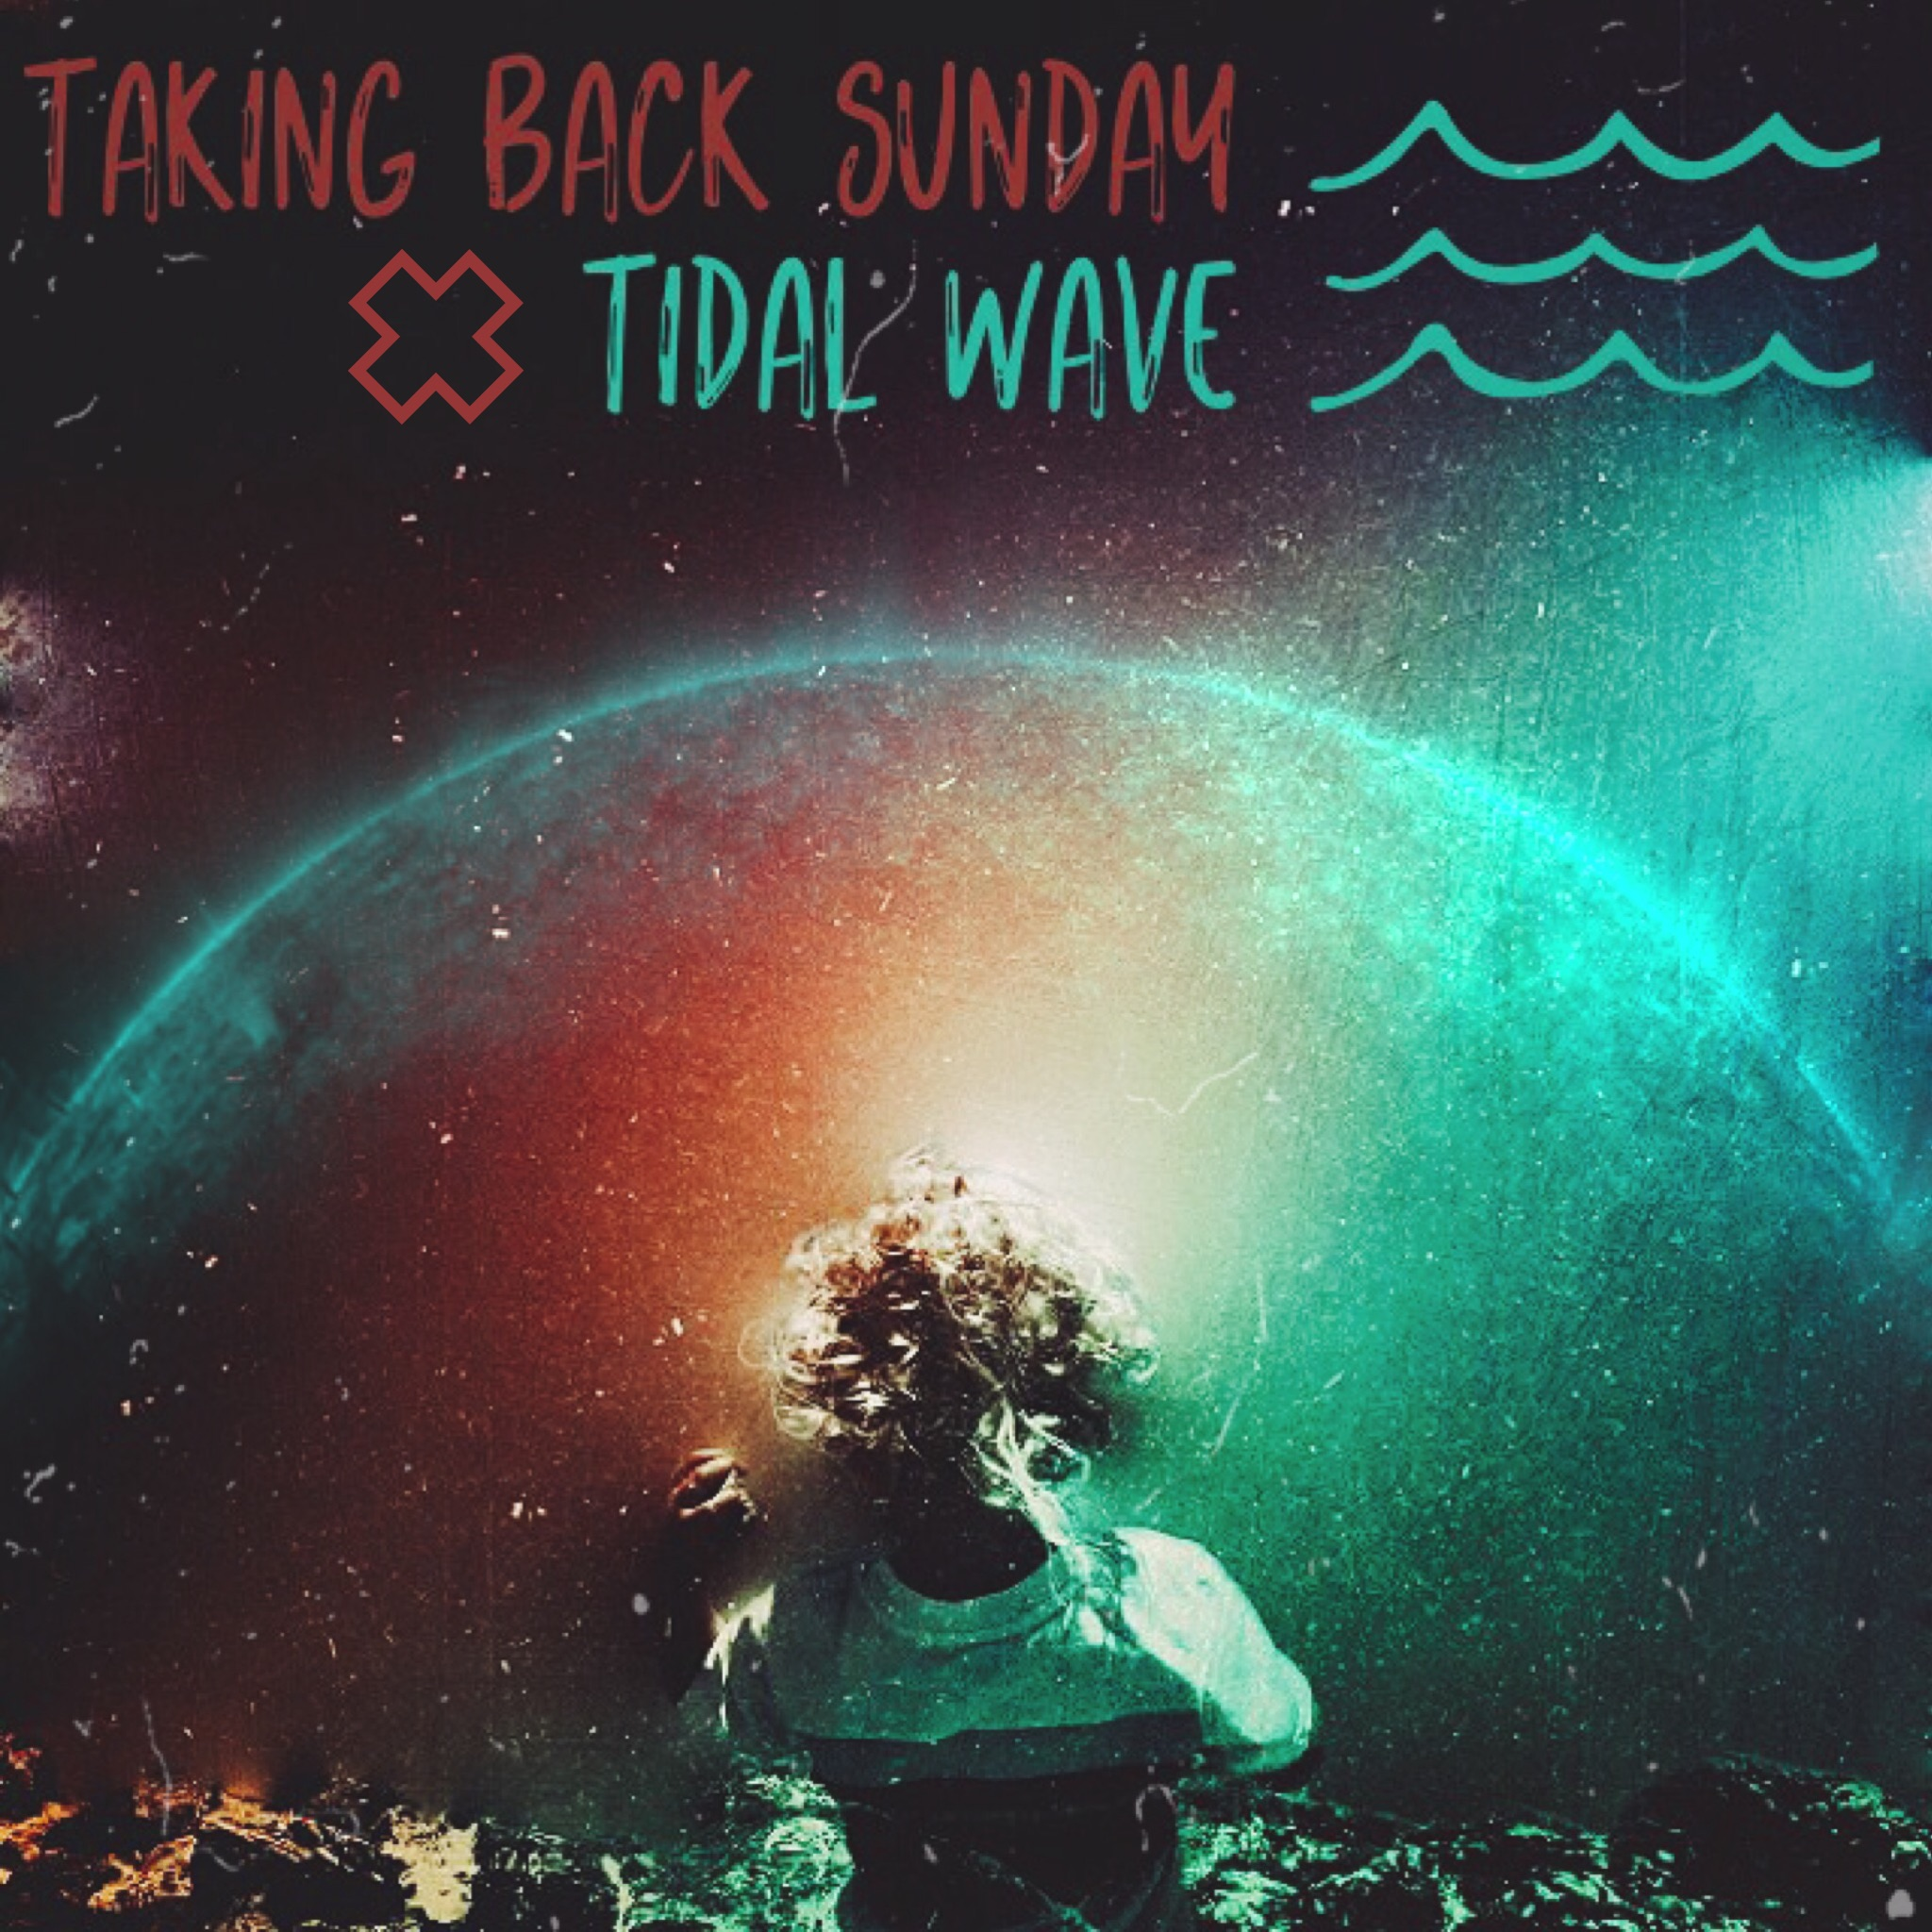 Image based on the official Tidal Wave artwork.